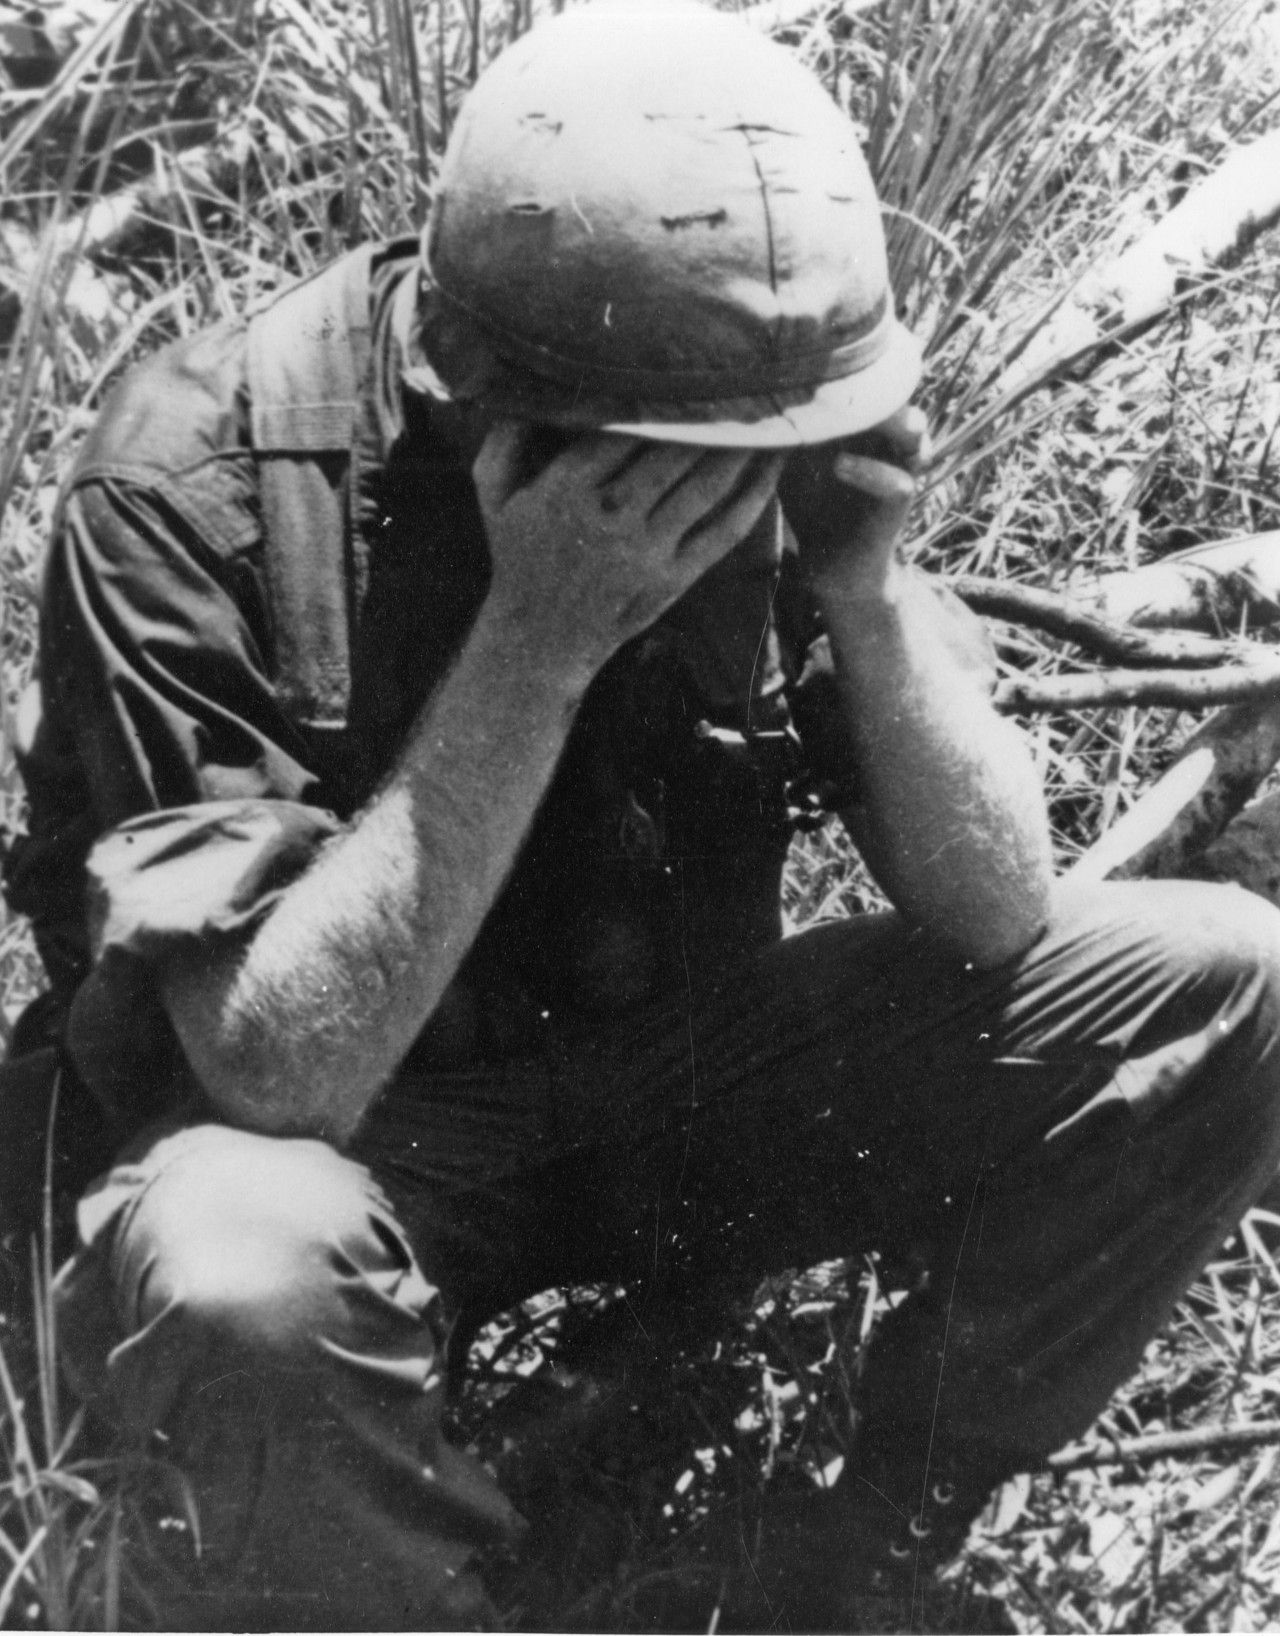 an introduction to the vietnam war era history The introduction of conscription by the australian government strategic behavior in the post-vietnam era in the vietnam war history of the.